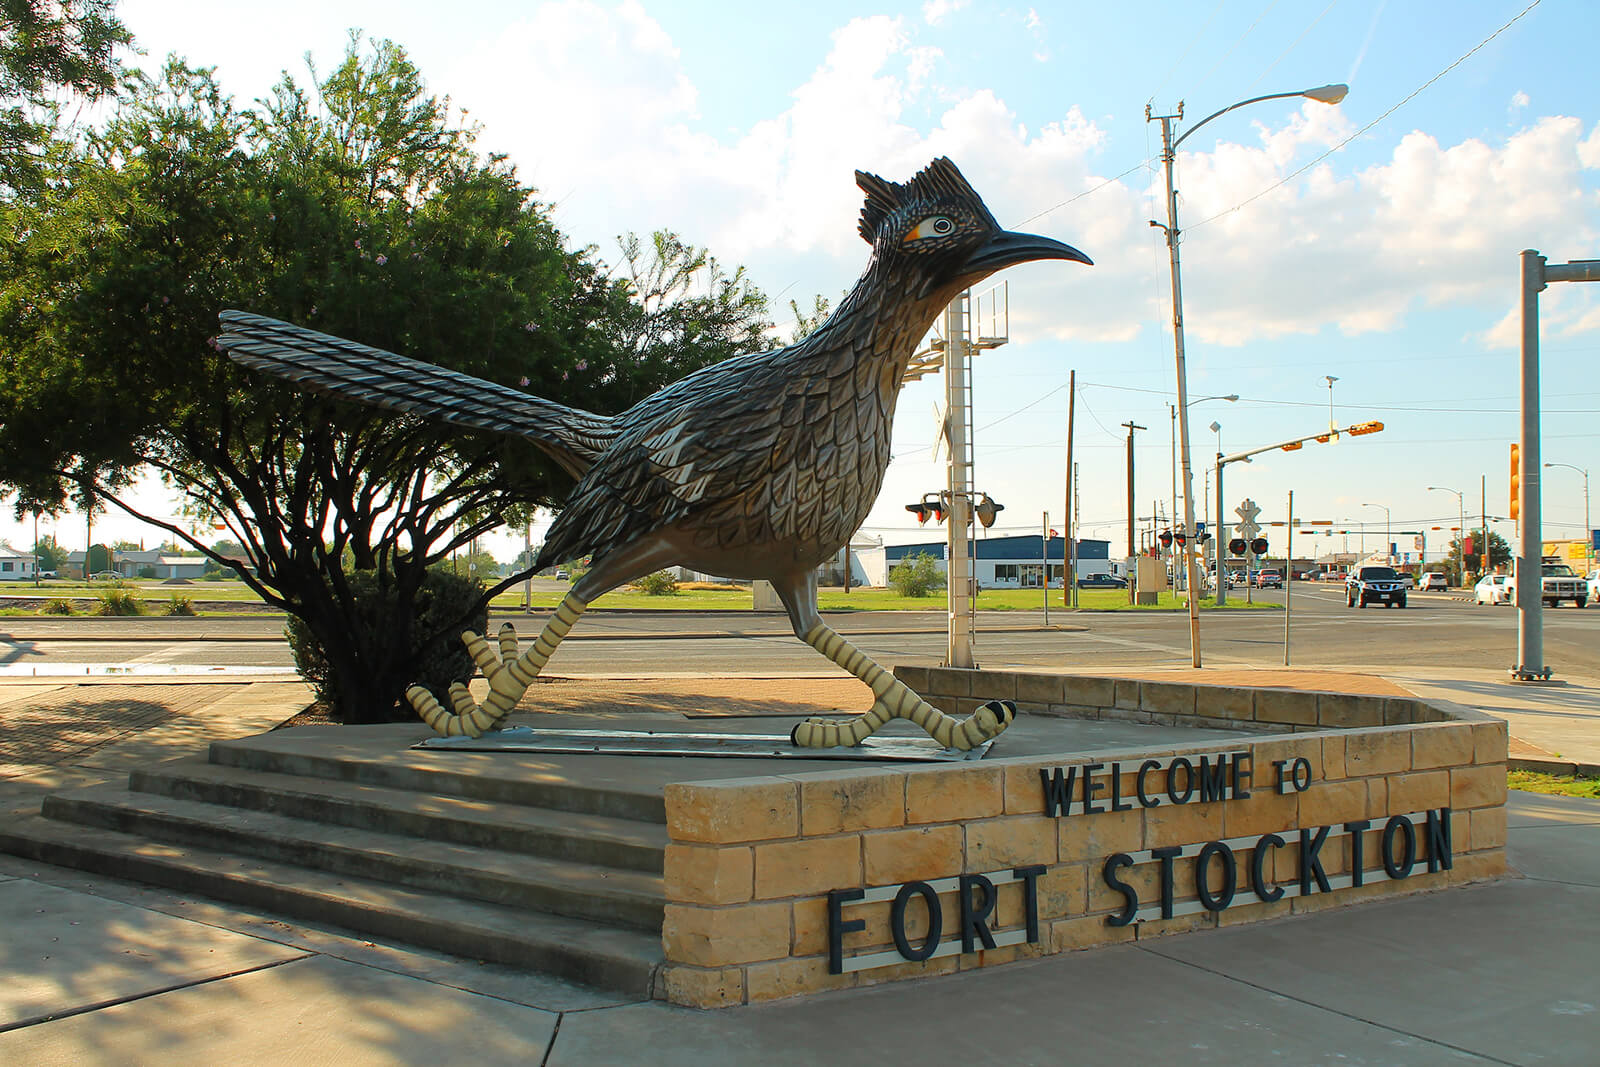 When driving from Austin to El Paso, don't miss the Paisano Pete Roadrunner in Fort Stockton, Texas